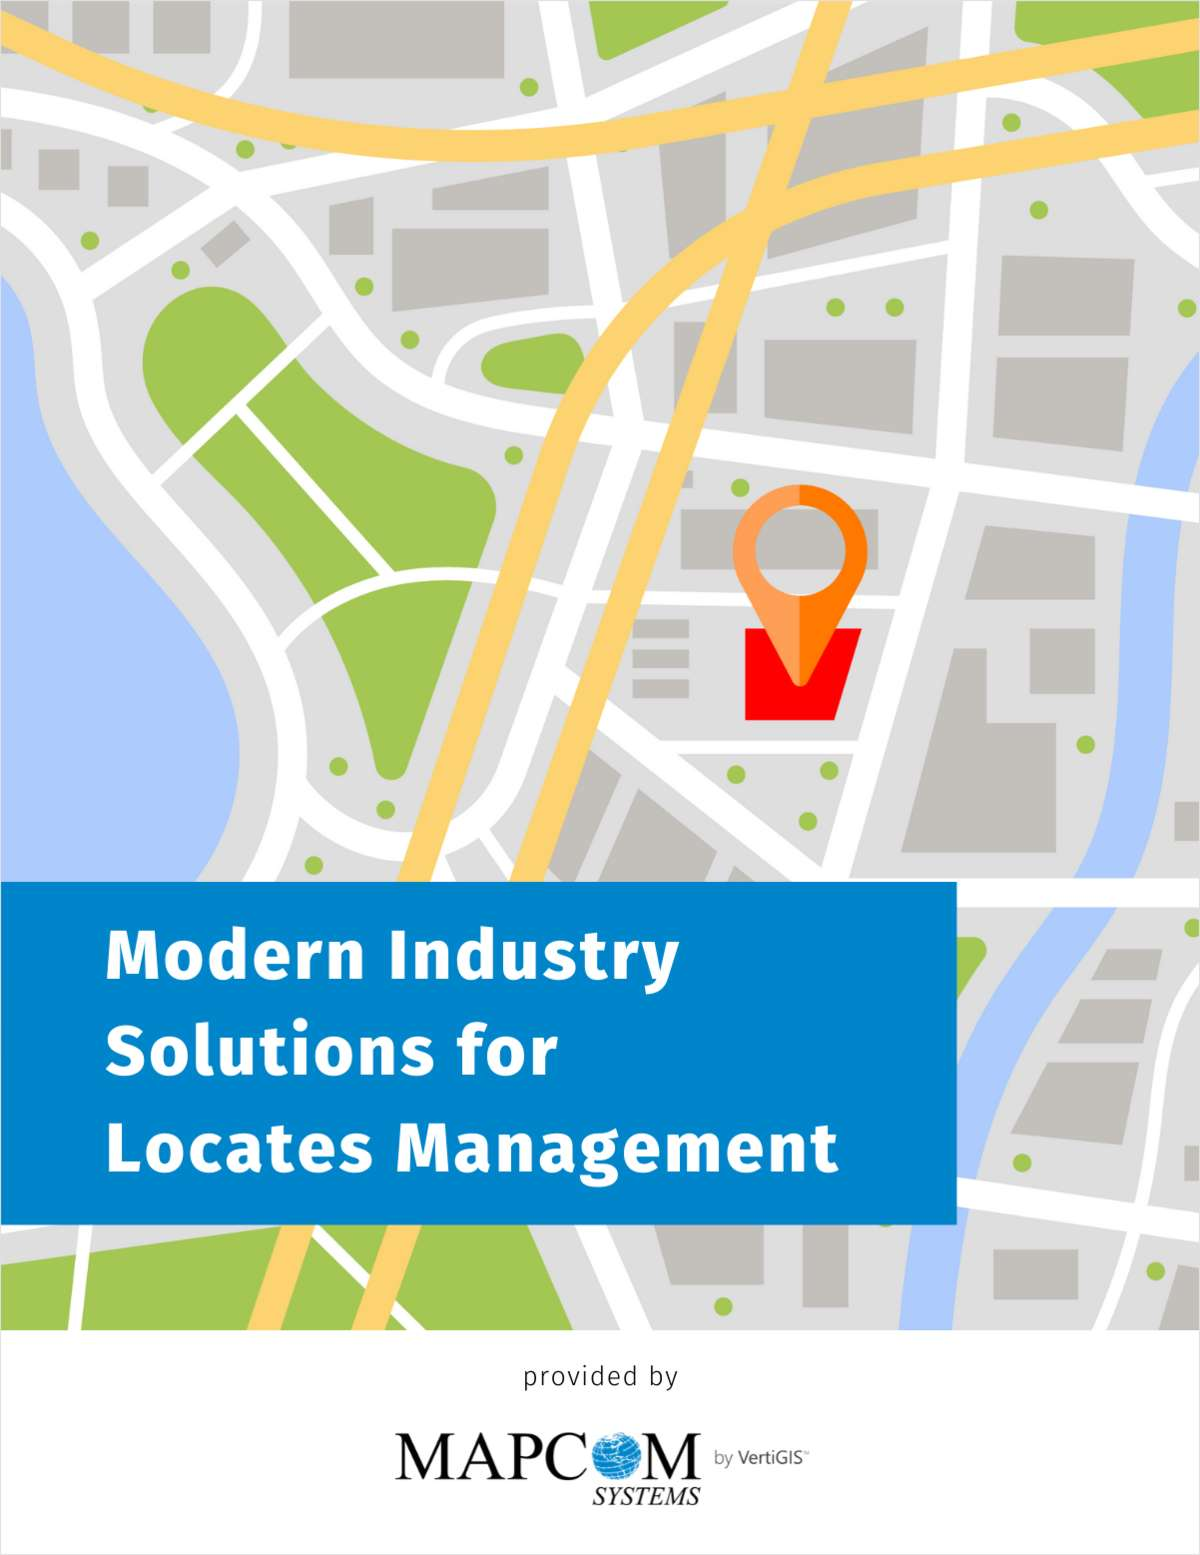 Modern Industry Solutions for Locates Management